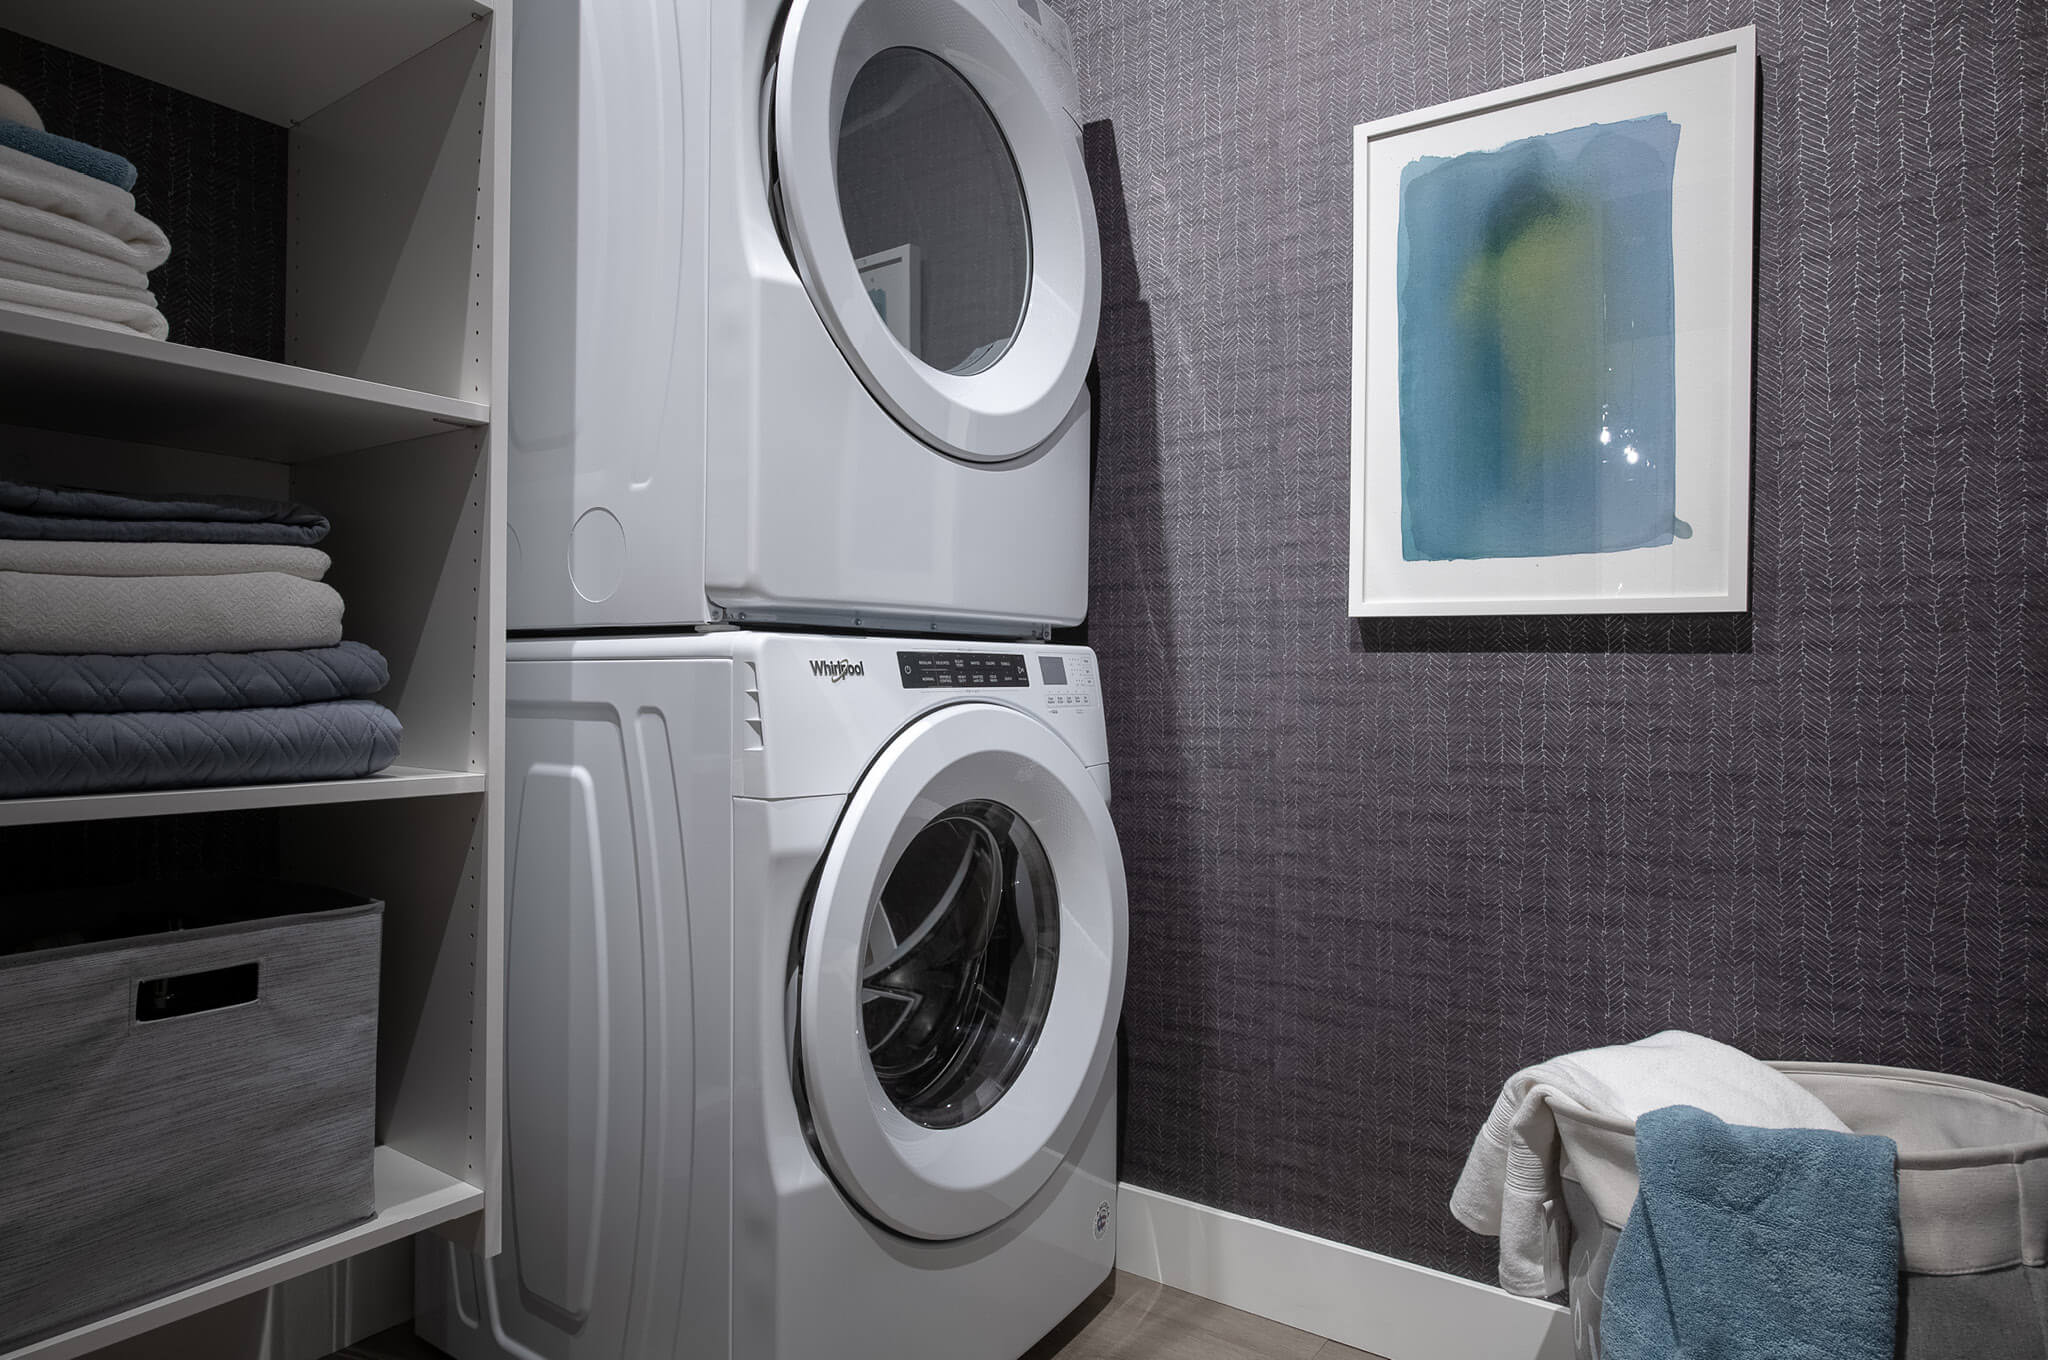 new abbotsford condos for sale with laundry